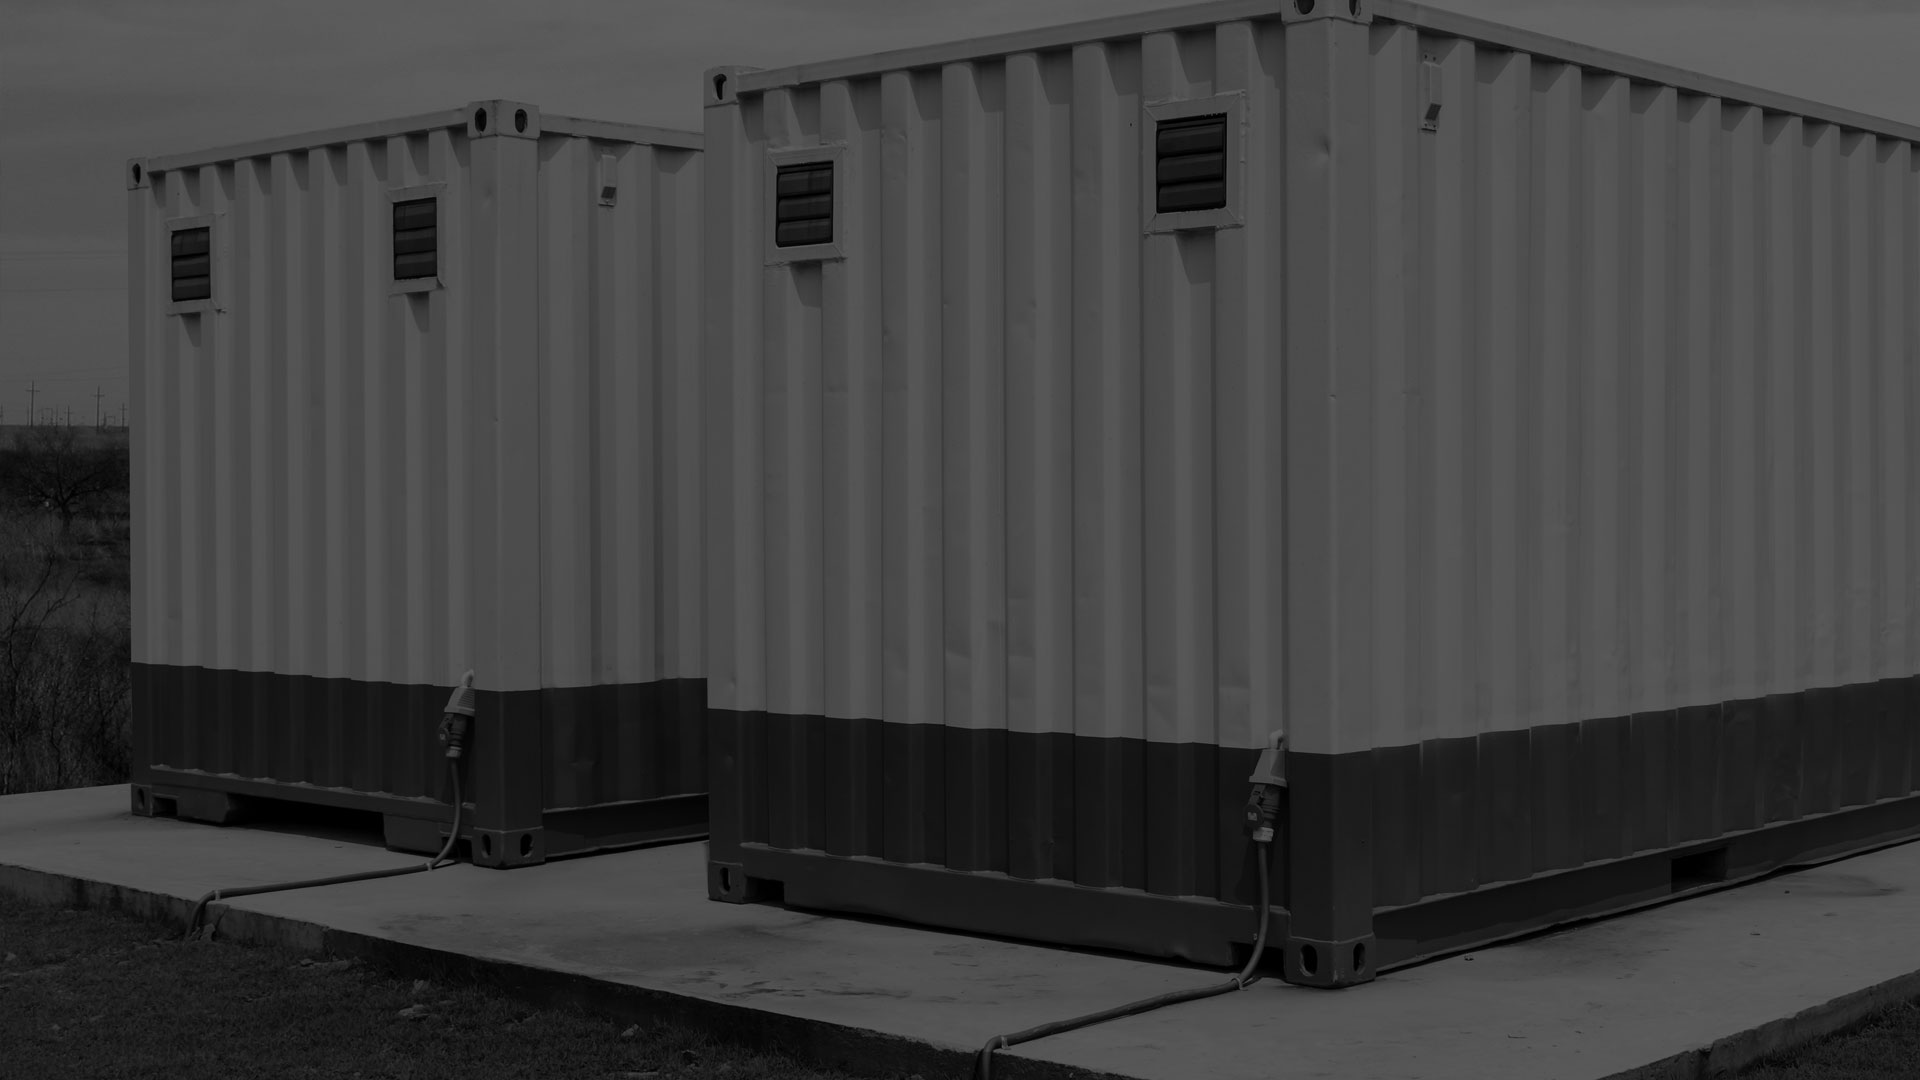 A darkened black and white image of container buildings.